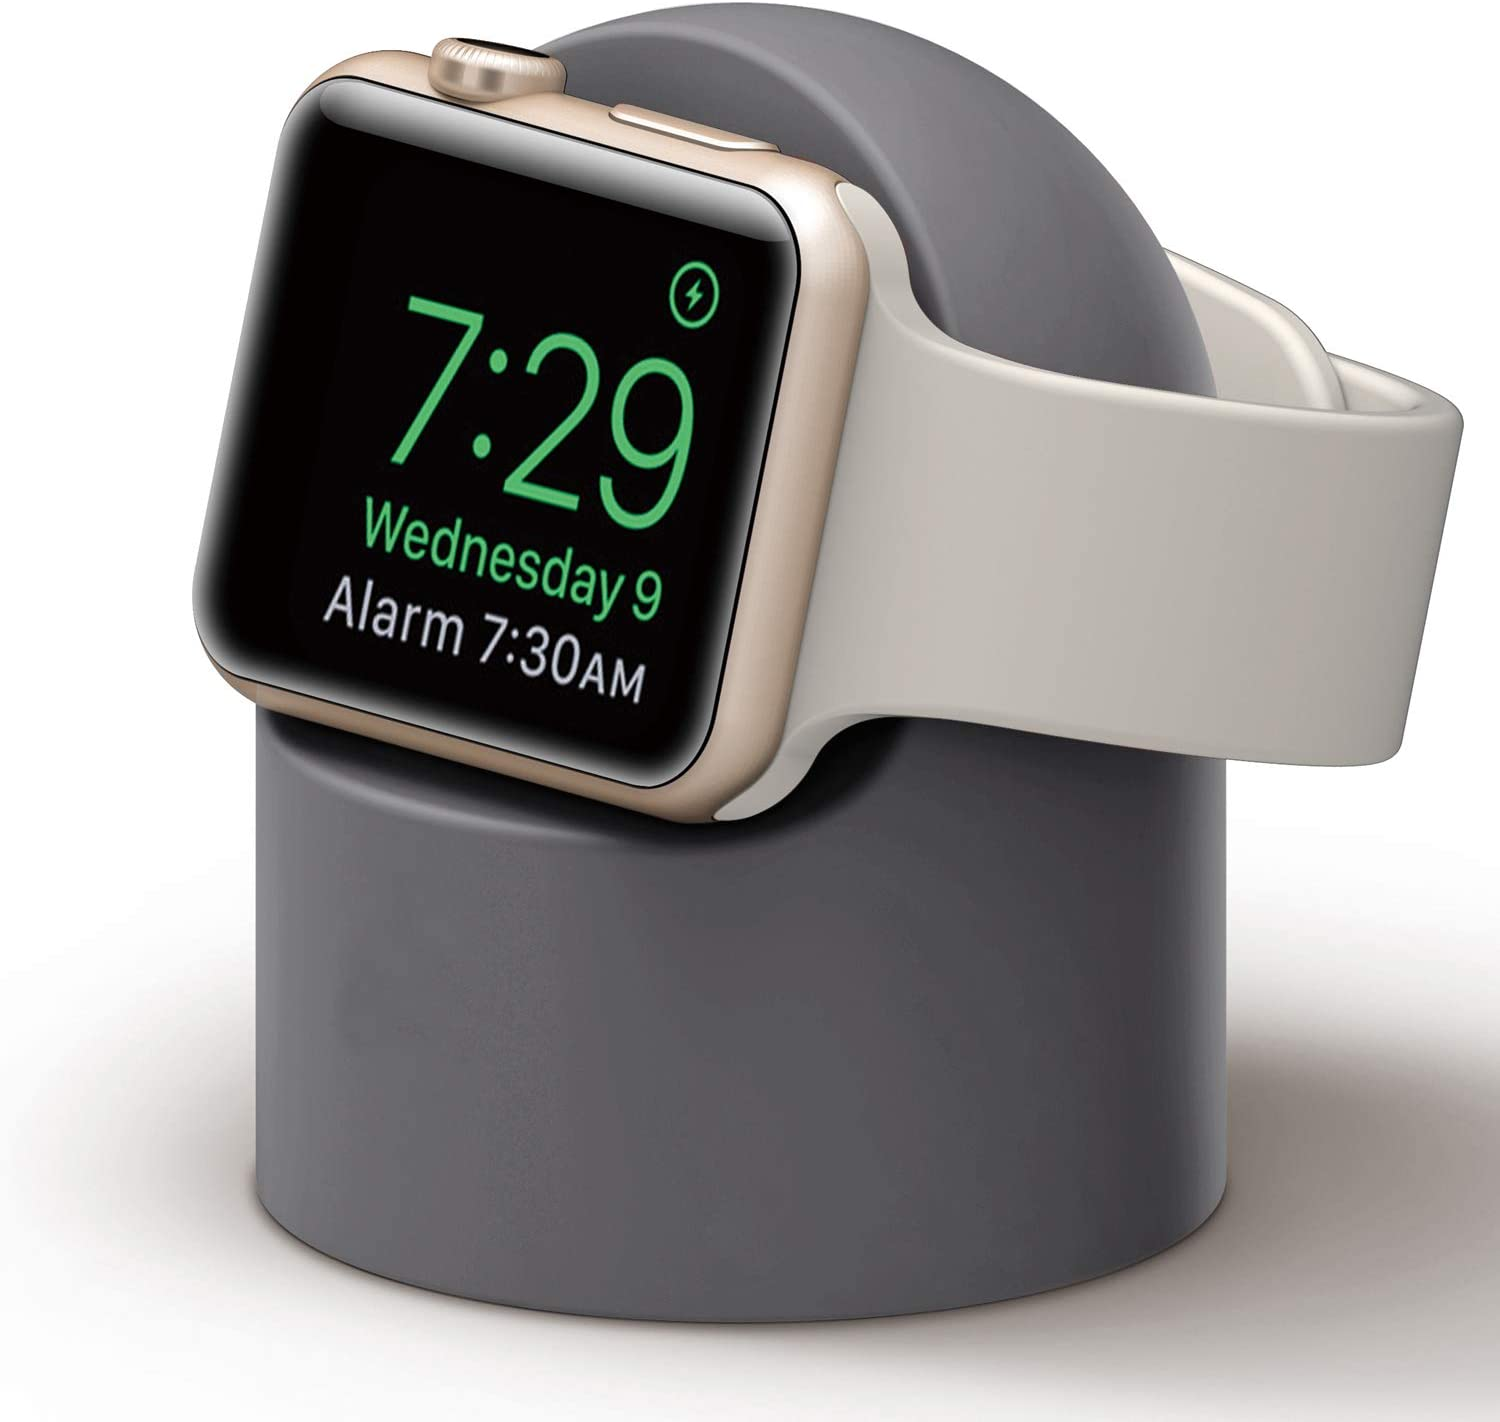 PROATL iWatch Charging Stand with Nightstand Mode, Silicone Charger Dock Holder for Apple Watch Series SE/6/5/4/3/2/1(44/42/40/38mm)【Adapters OR Cables NOT Included】(Grey)